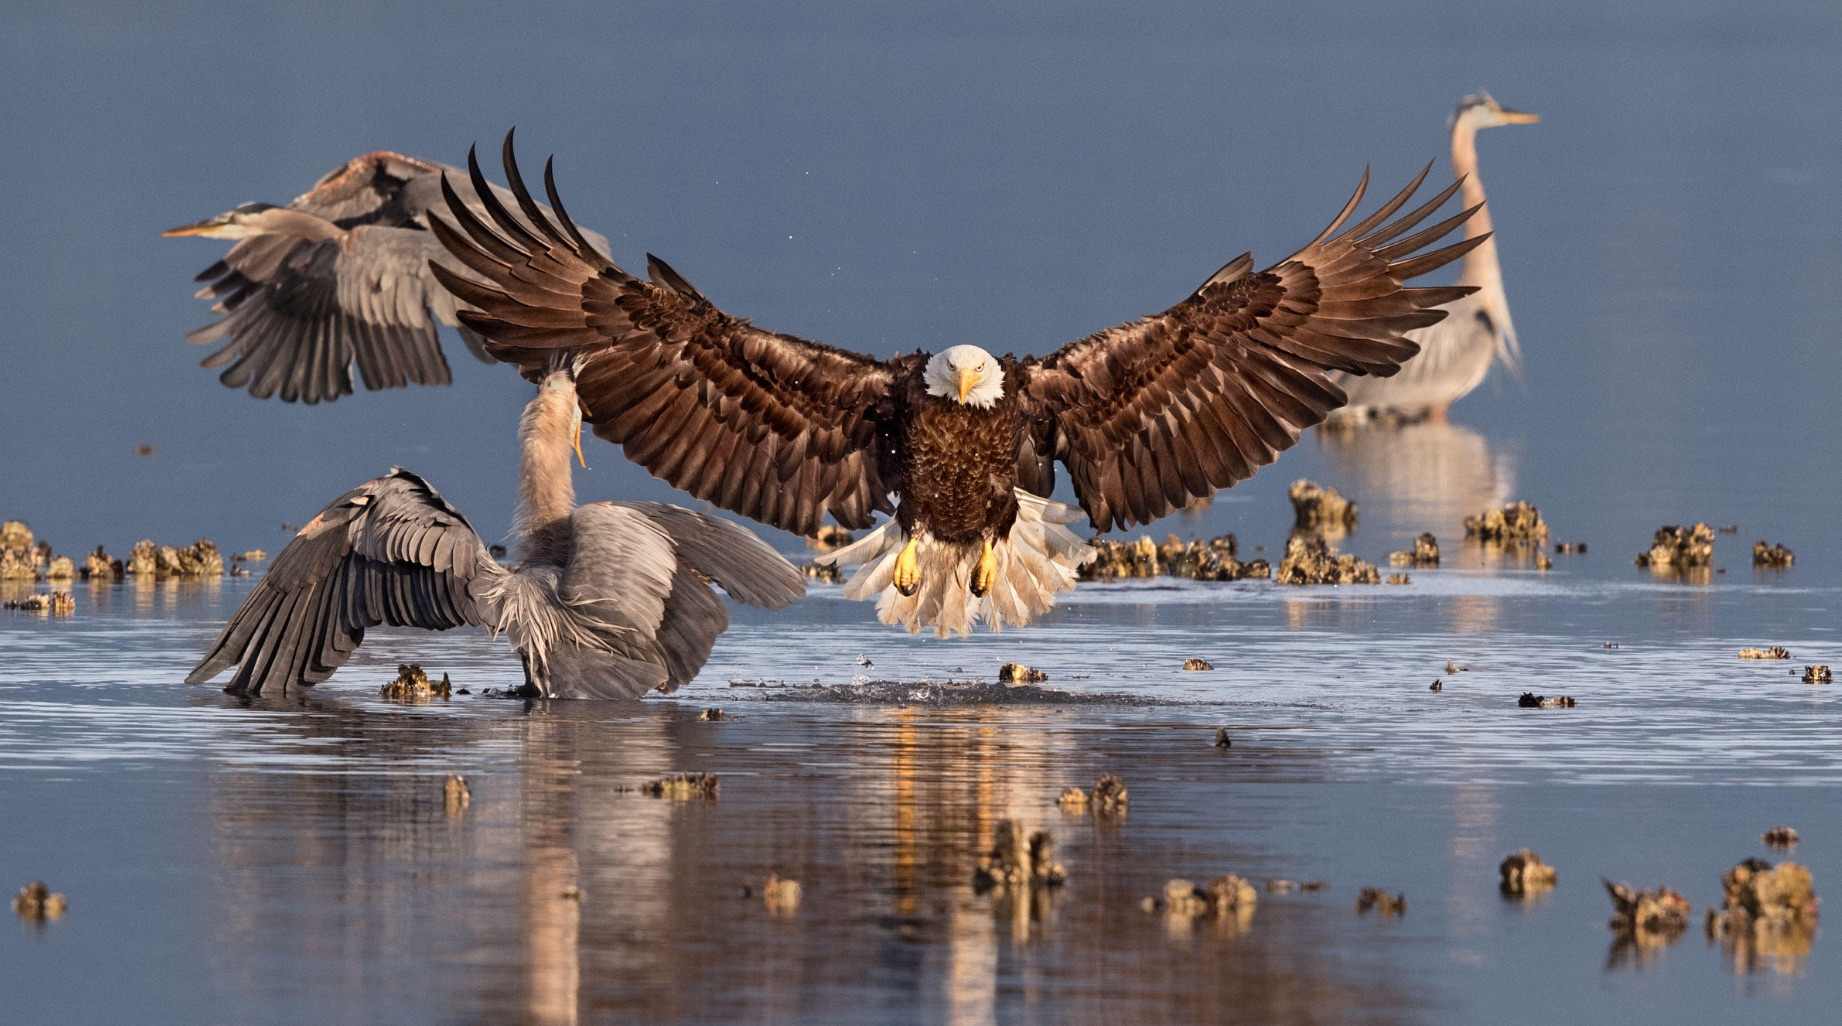 Bonnie Block's winning photograph in the 2016 National Audubon Photography Contest